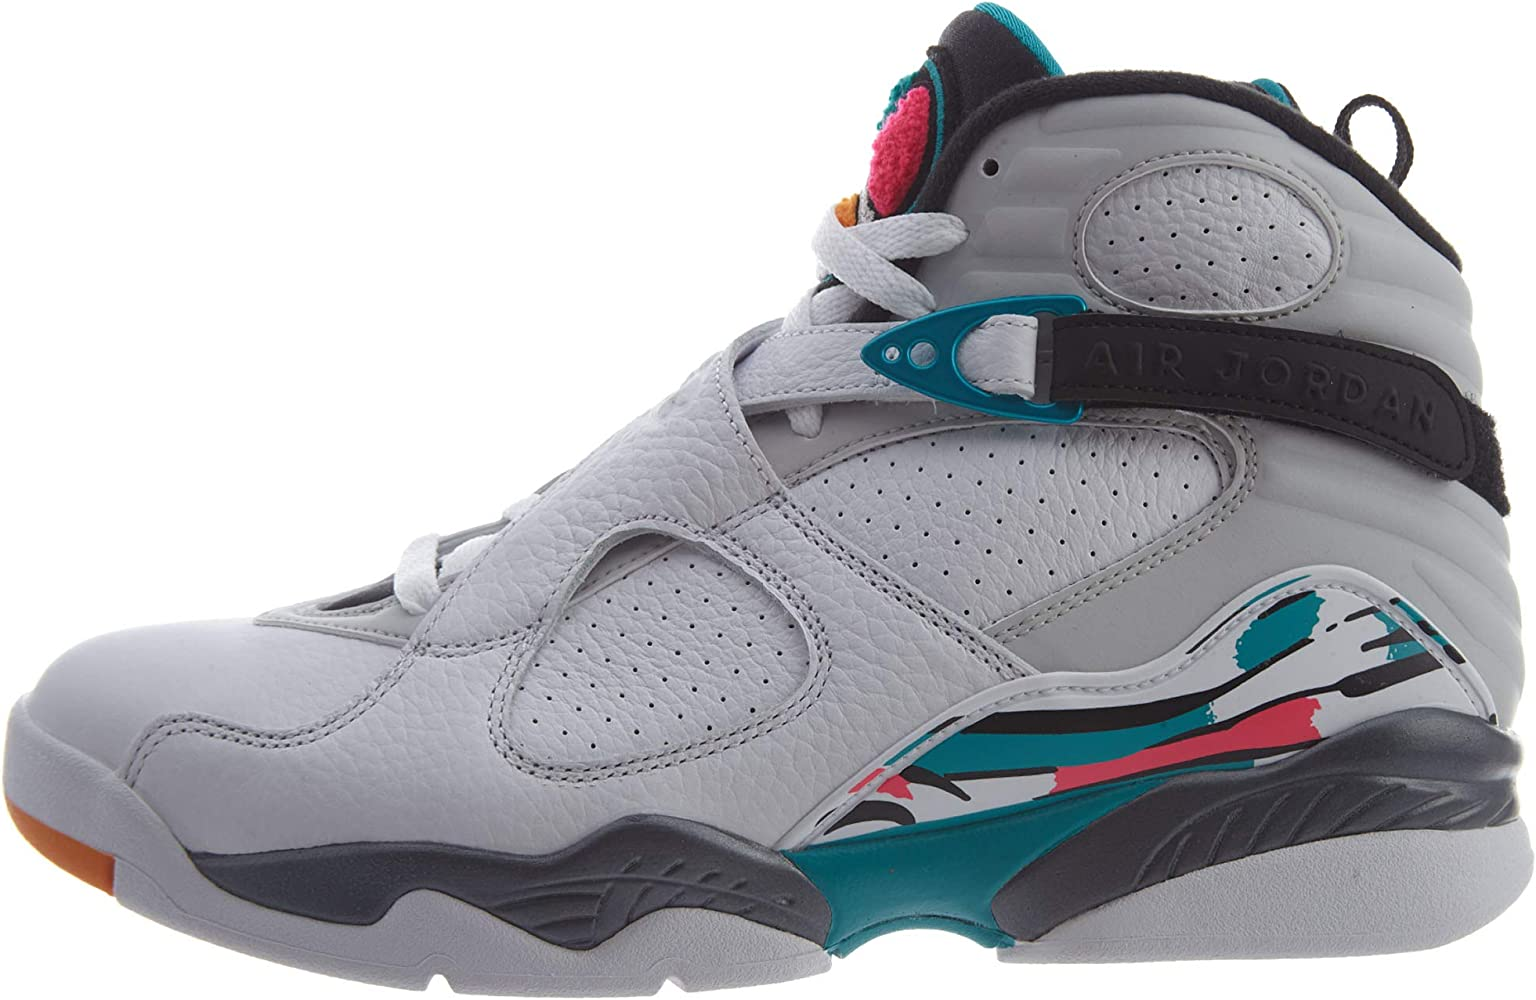 b860c6497ec78 Amazon.com | Nike AIR Jordan 8 Retro South Beach 305381-113 (11.5 ...